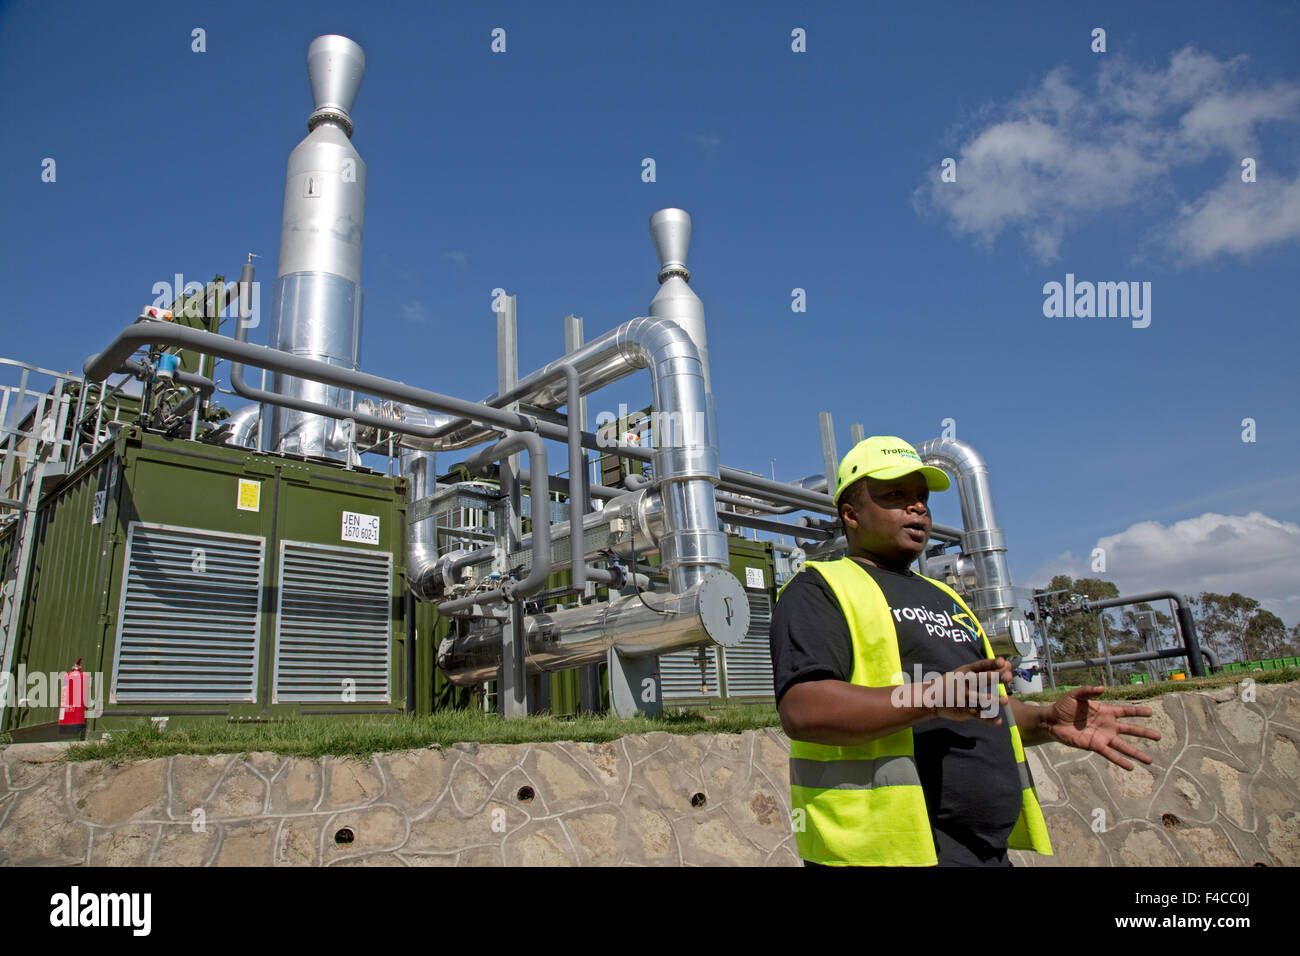 Plant Anaerobic Stock Photos & Plant Anaerobic Stock Images - Alamy